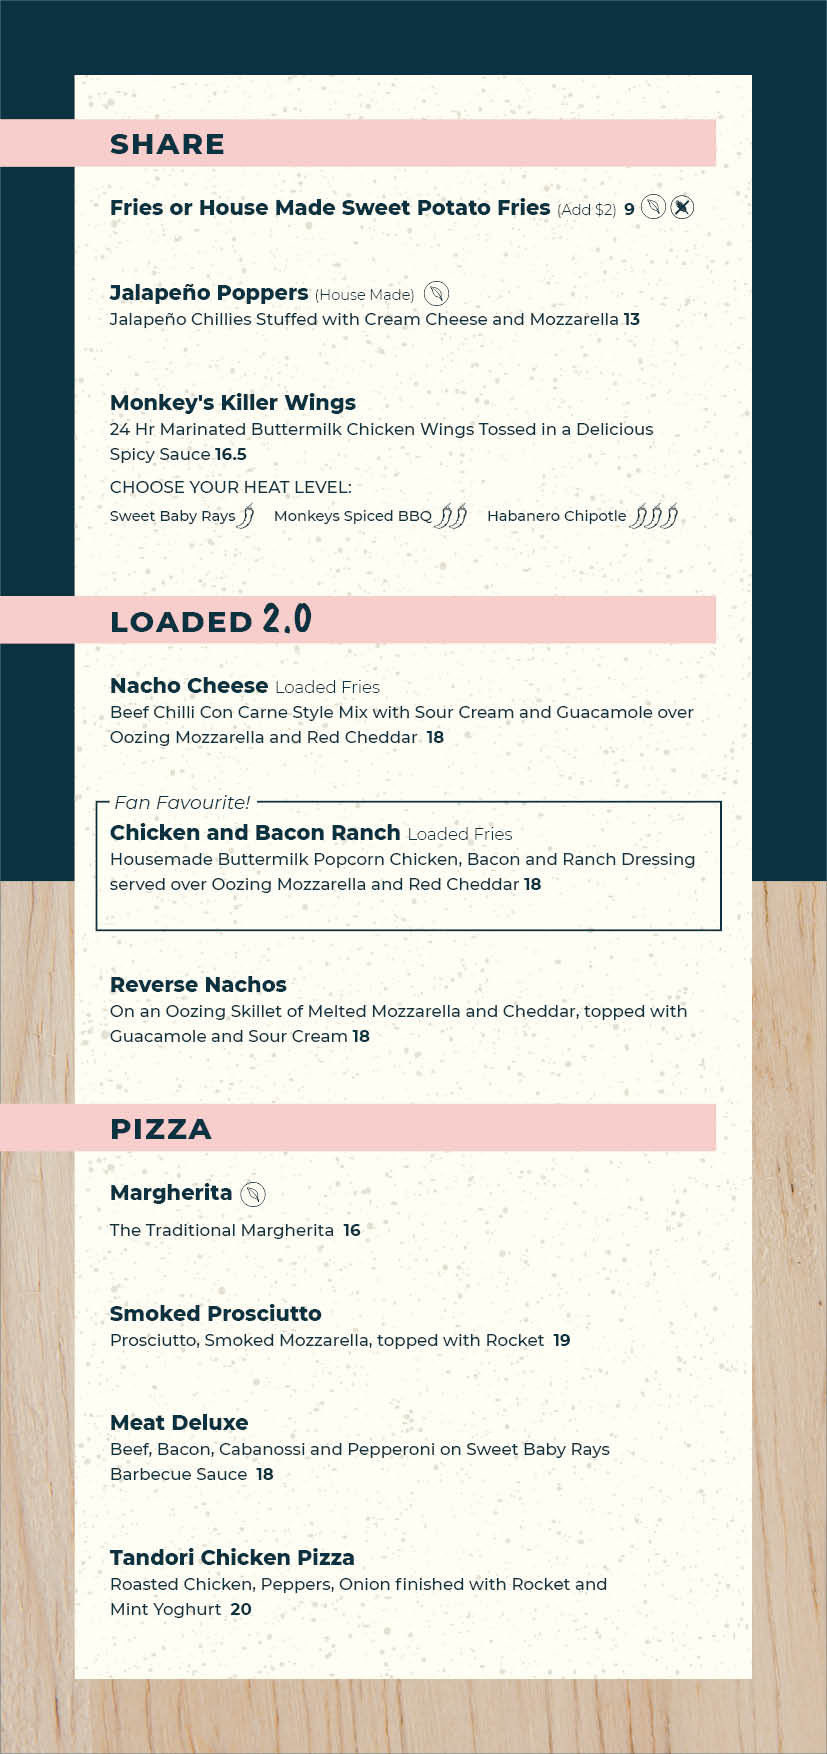 Menu-Redesign-feb-2019-FINAL-portfolio3.jpg